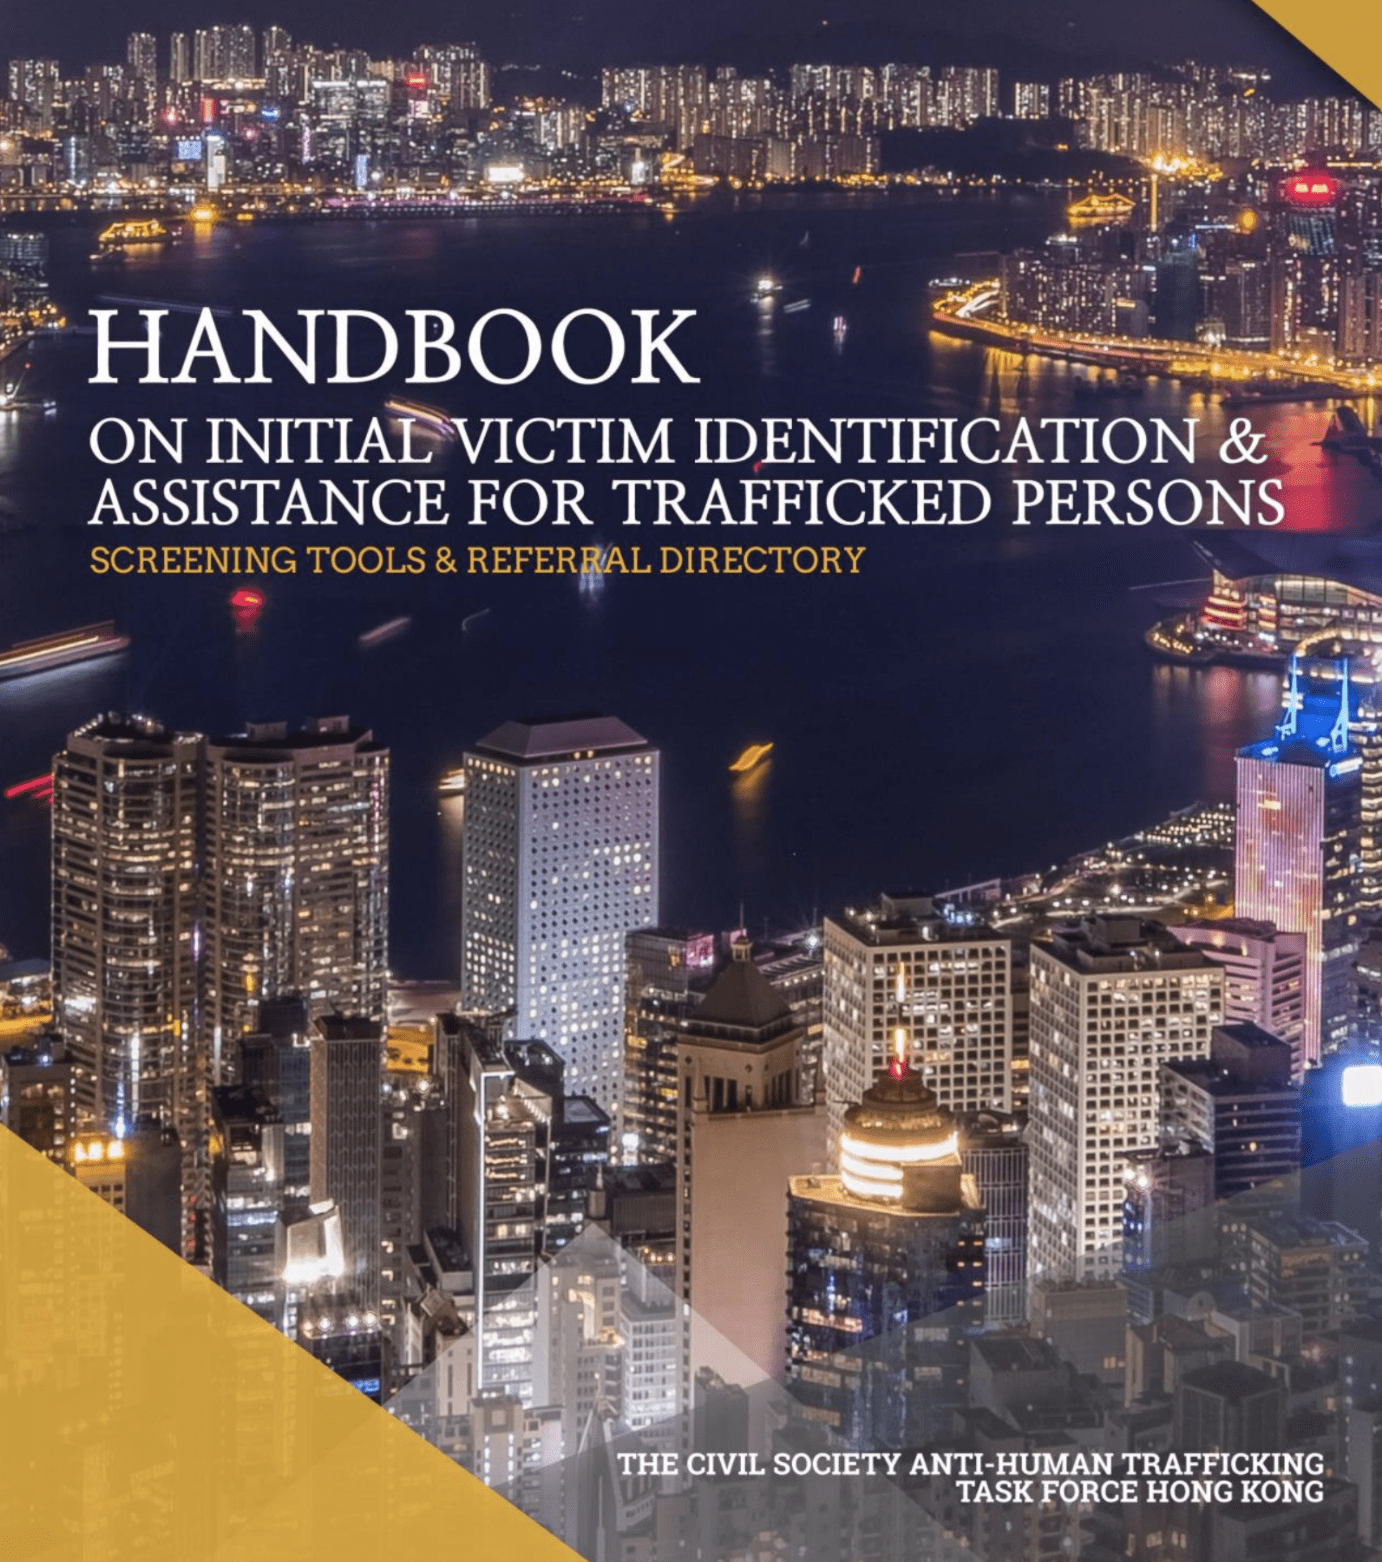 Handbook on Initial Victim Identification & Assistance for Trafficked Persons